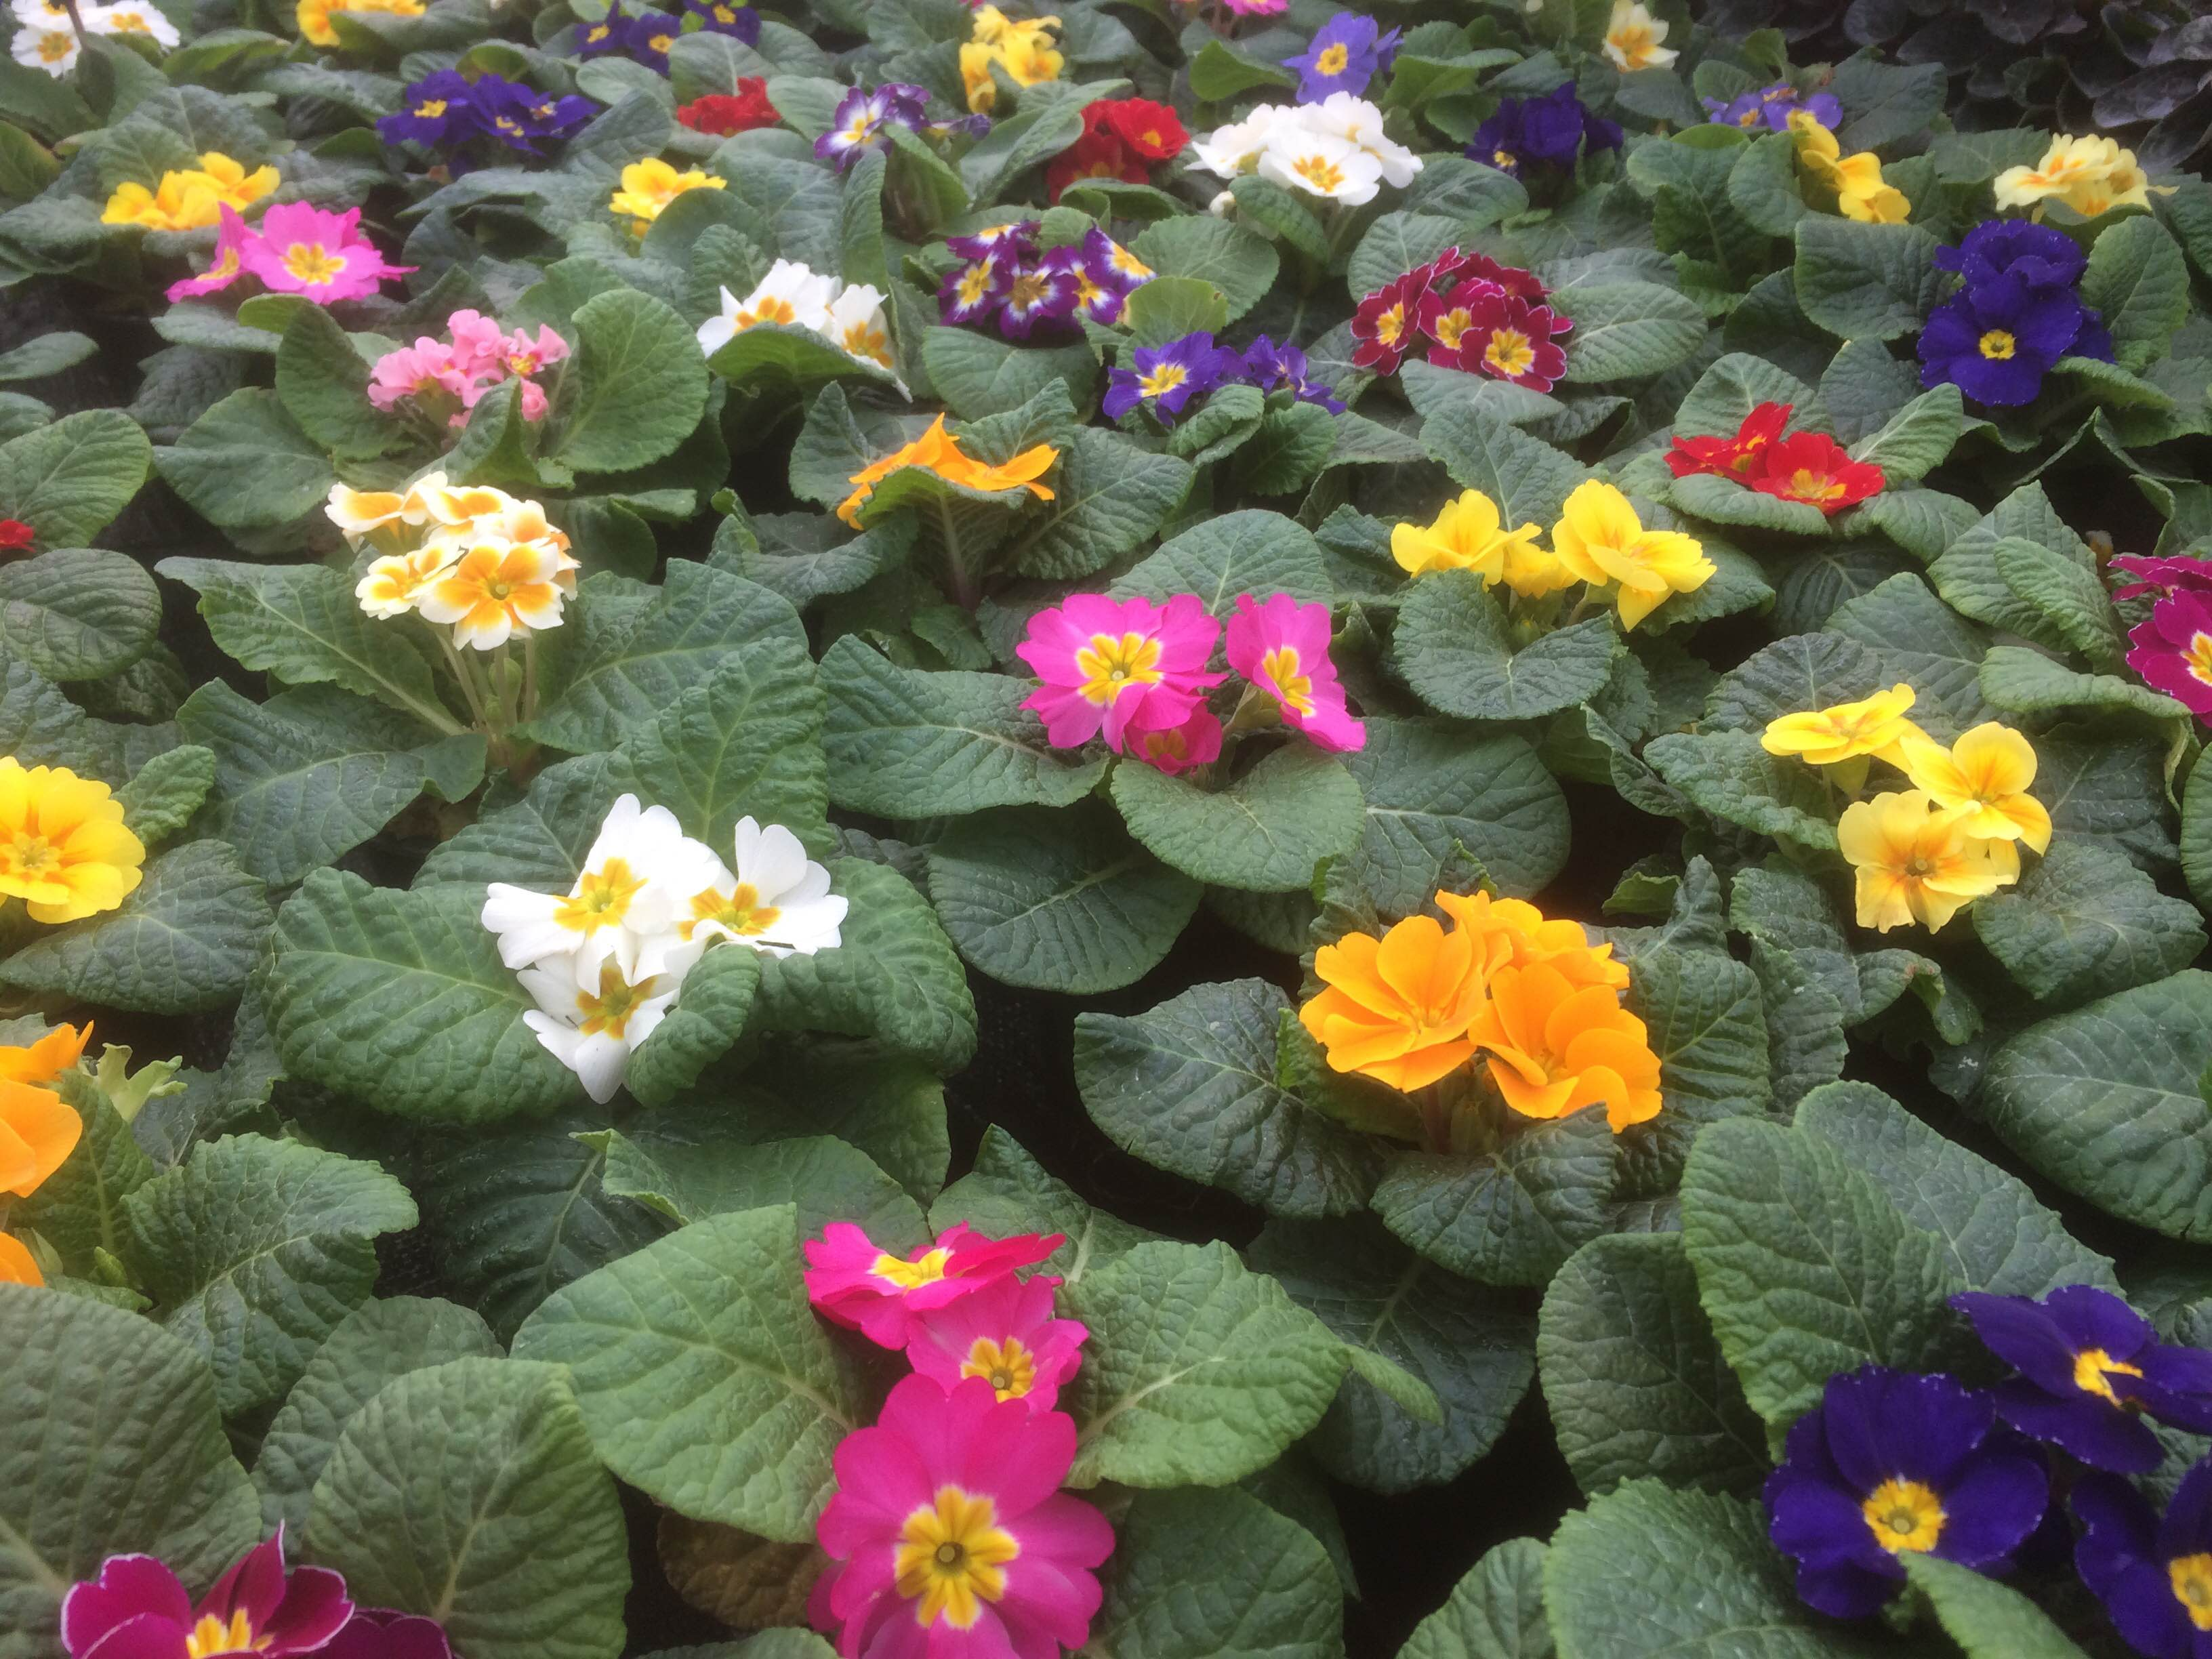 Primroses – 5 For £5 Or £1.25 Each